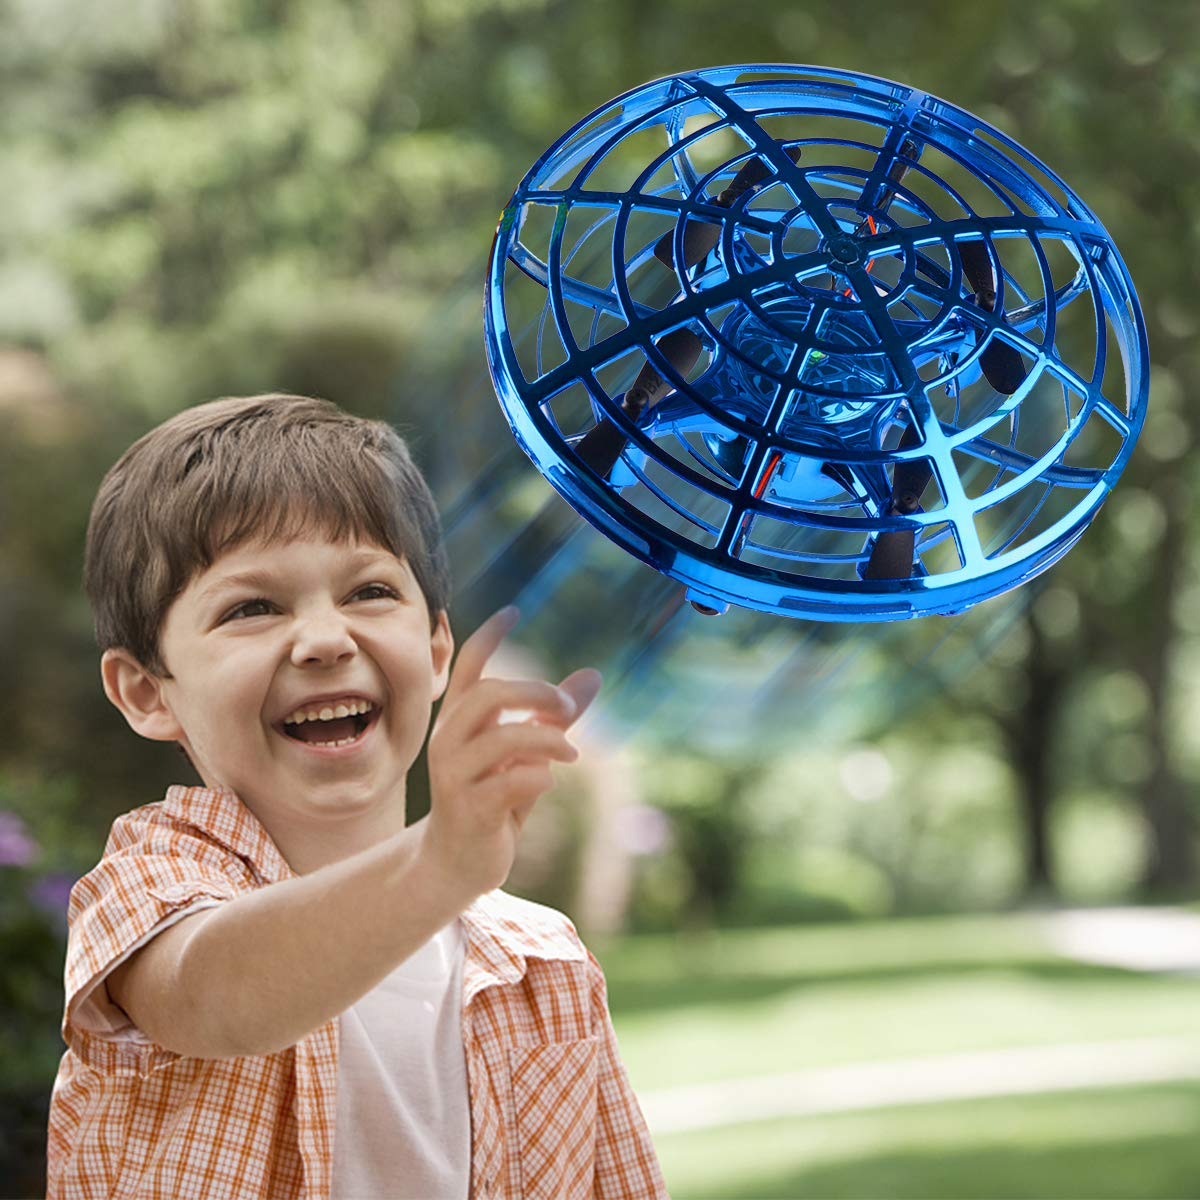 Oucles Mini Drones for Kids and Adults Ball with 360° Rotating and Shinning LED Lights, Flying Toy for Boys Girls and Kids Gifts by Oucles (Image #6)